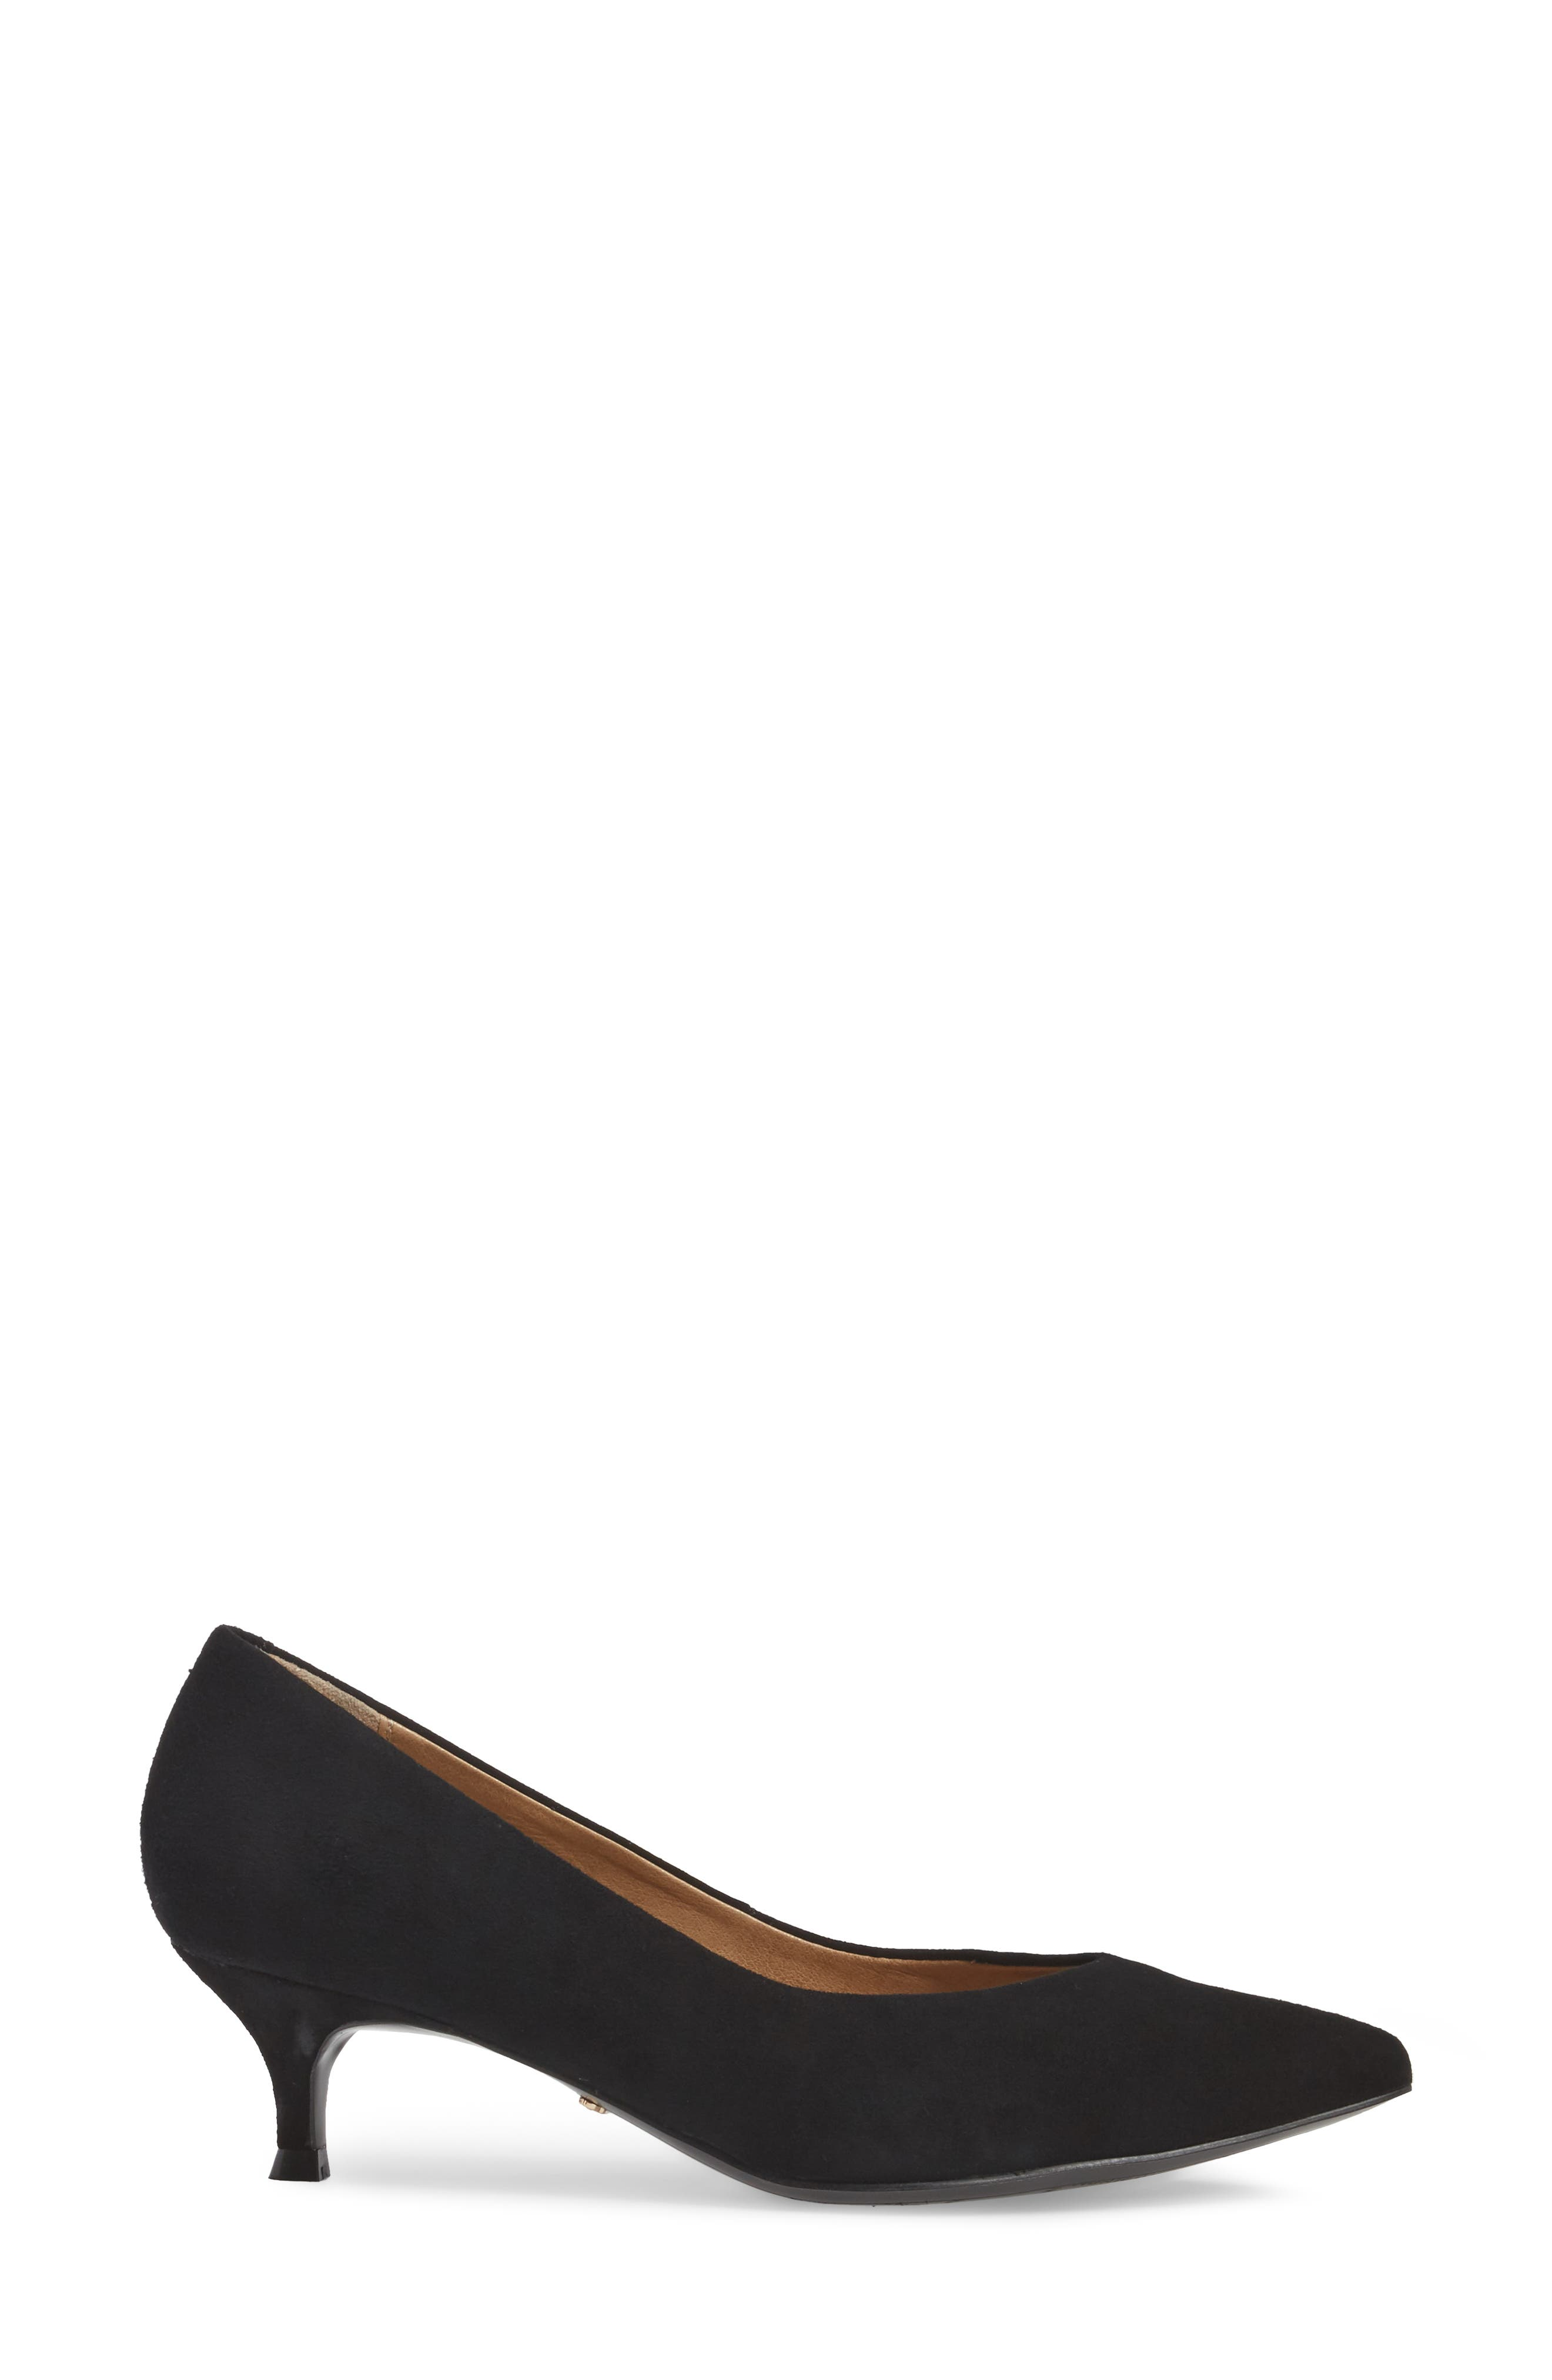 Josie Kitten Heel Pump,                             Alternate thumbnail 3, color,                             BLACK SUEDE